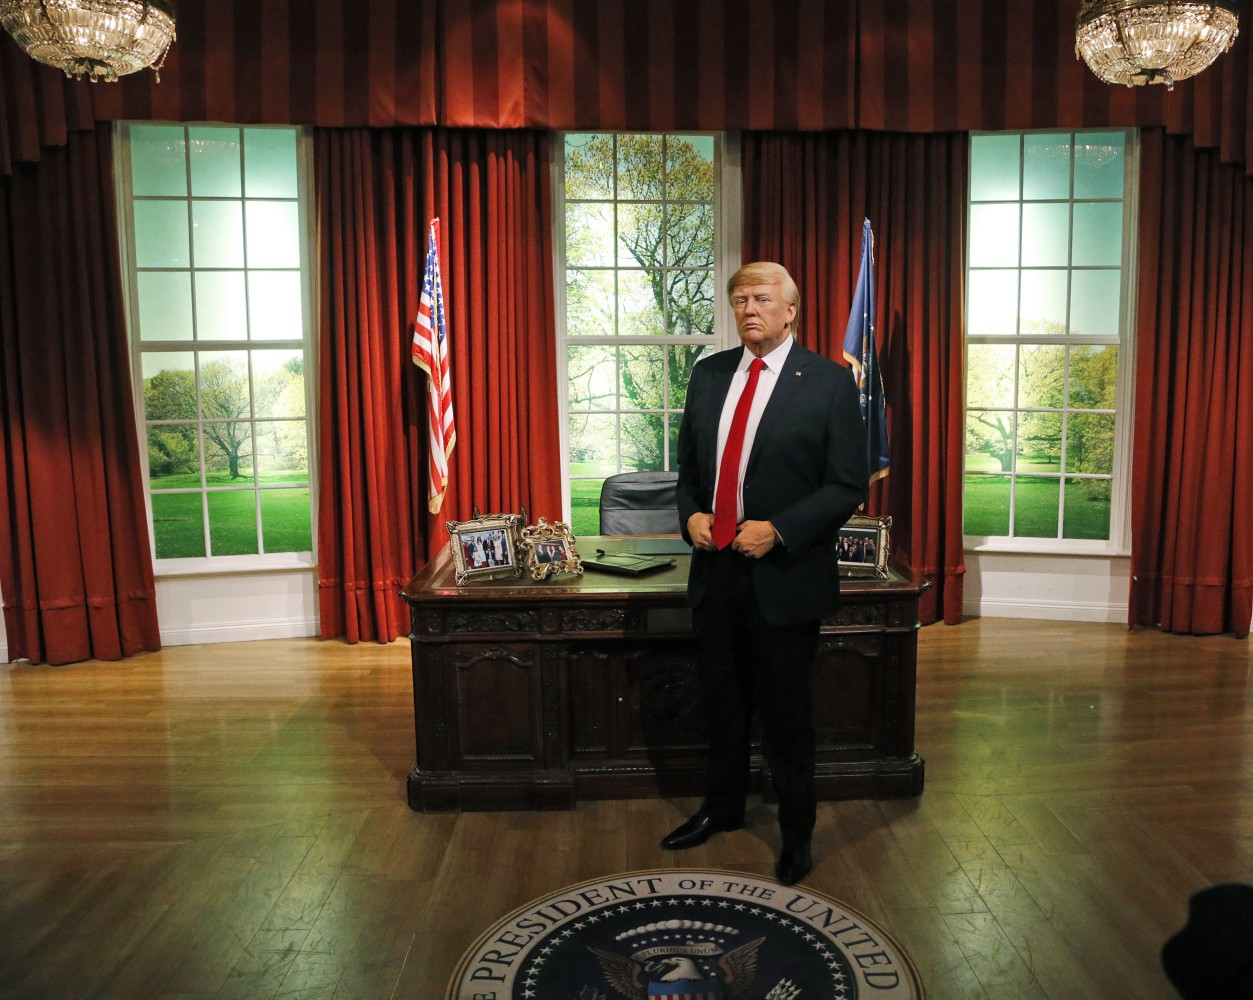 Wax Donald Trump Moves Into Oval Office At Madame Tussauds